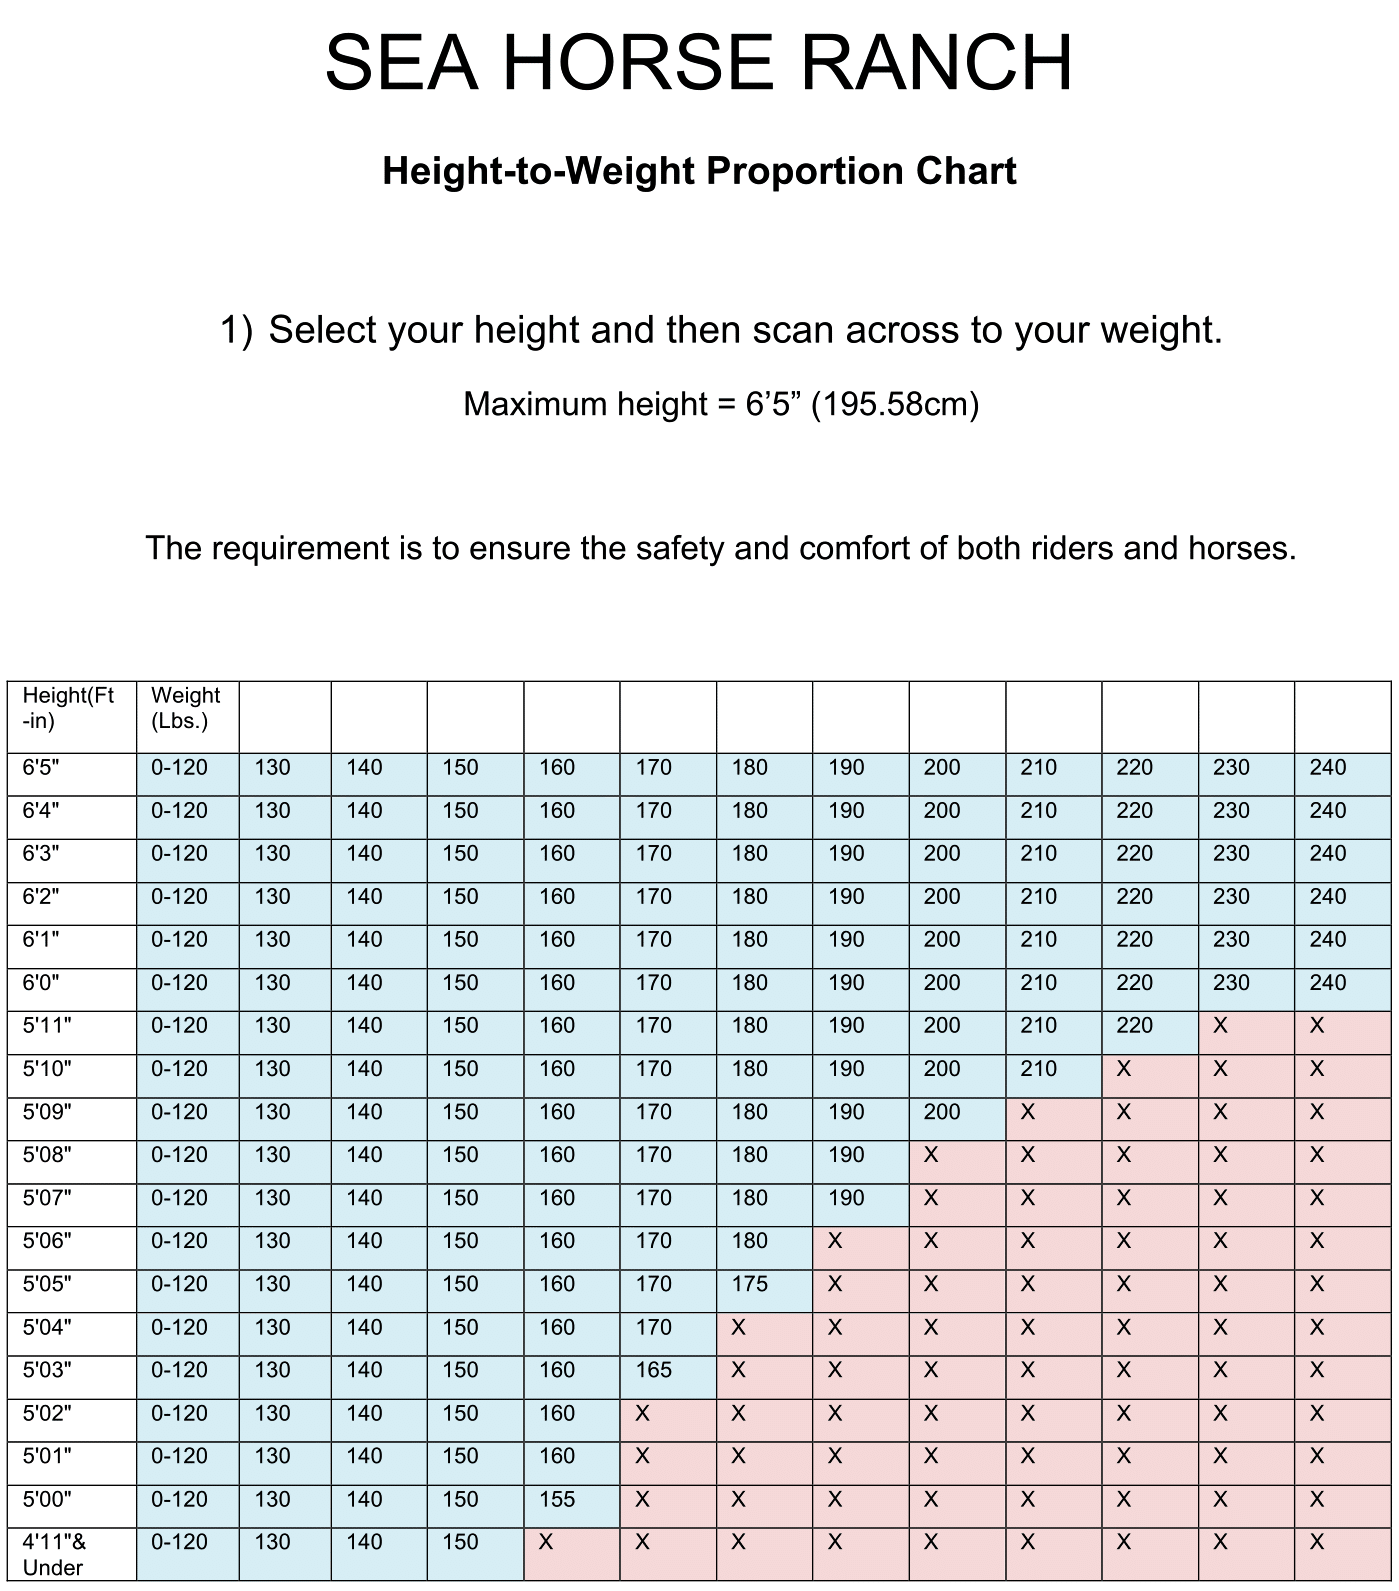 Height weight restrictions horseback riding sea horse ranch heigh to weight proportion chart 1 ft geenschuldenfo Image collections